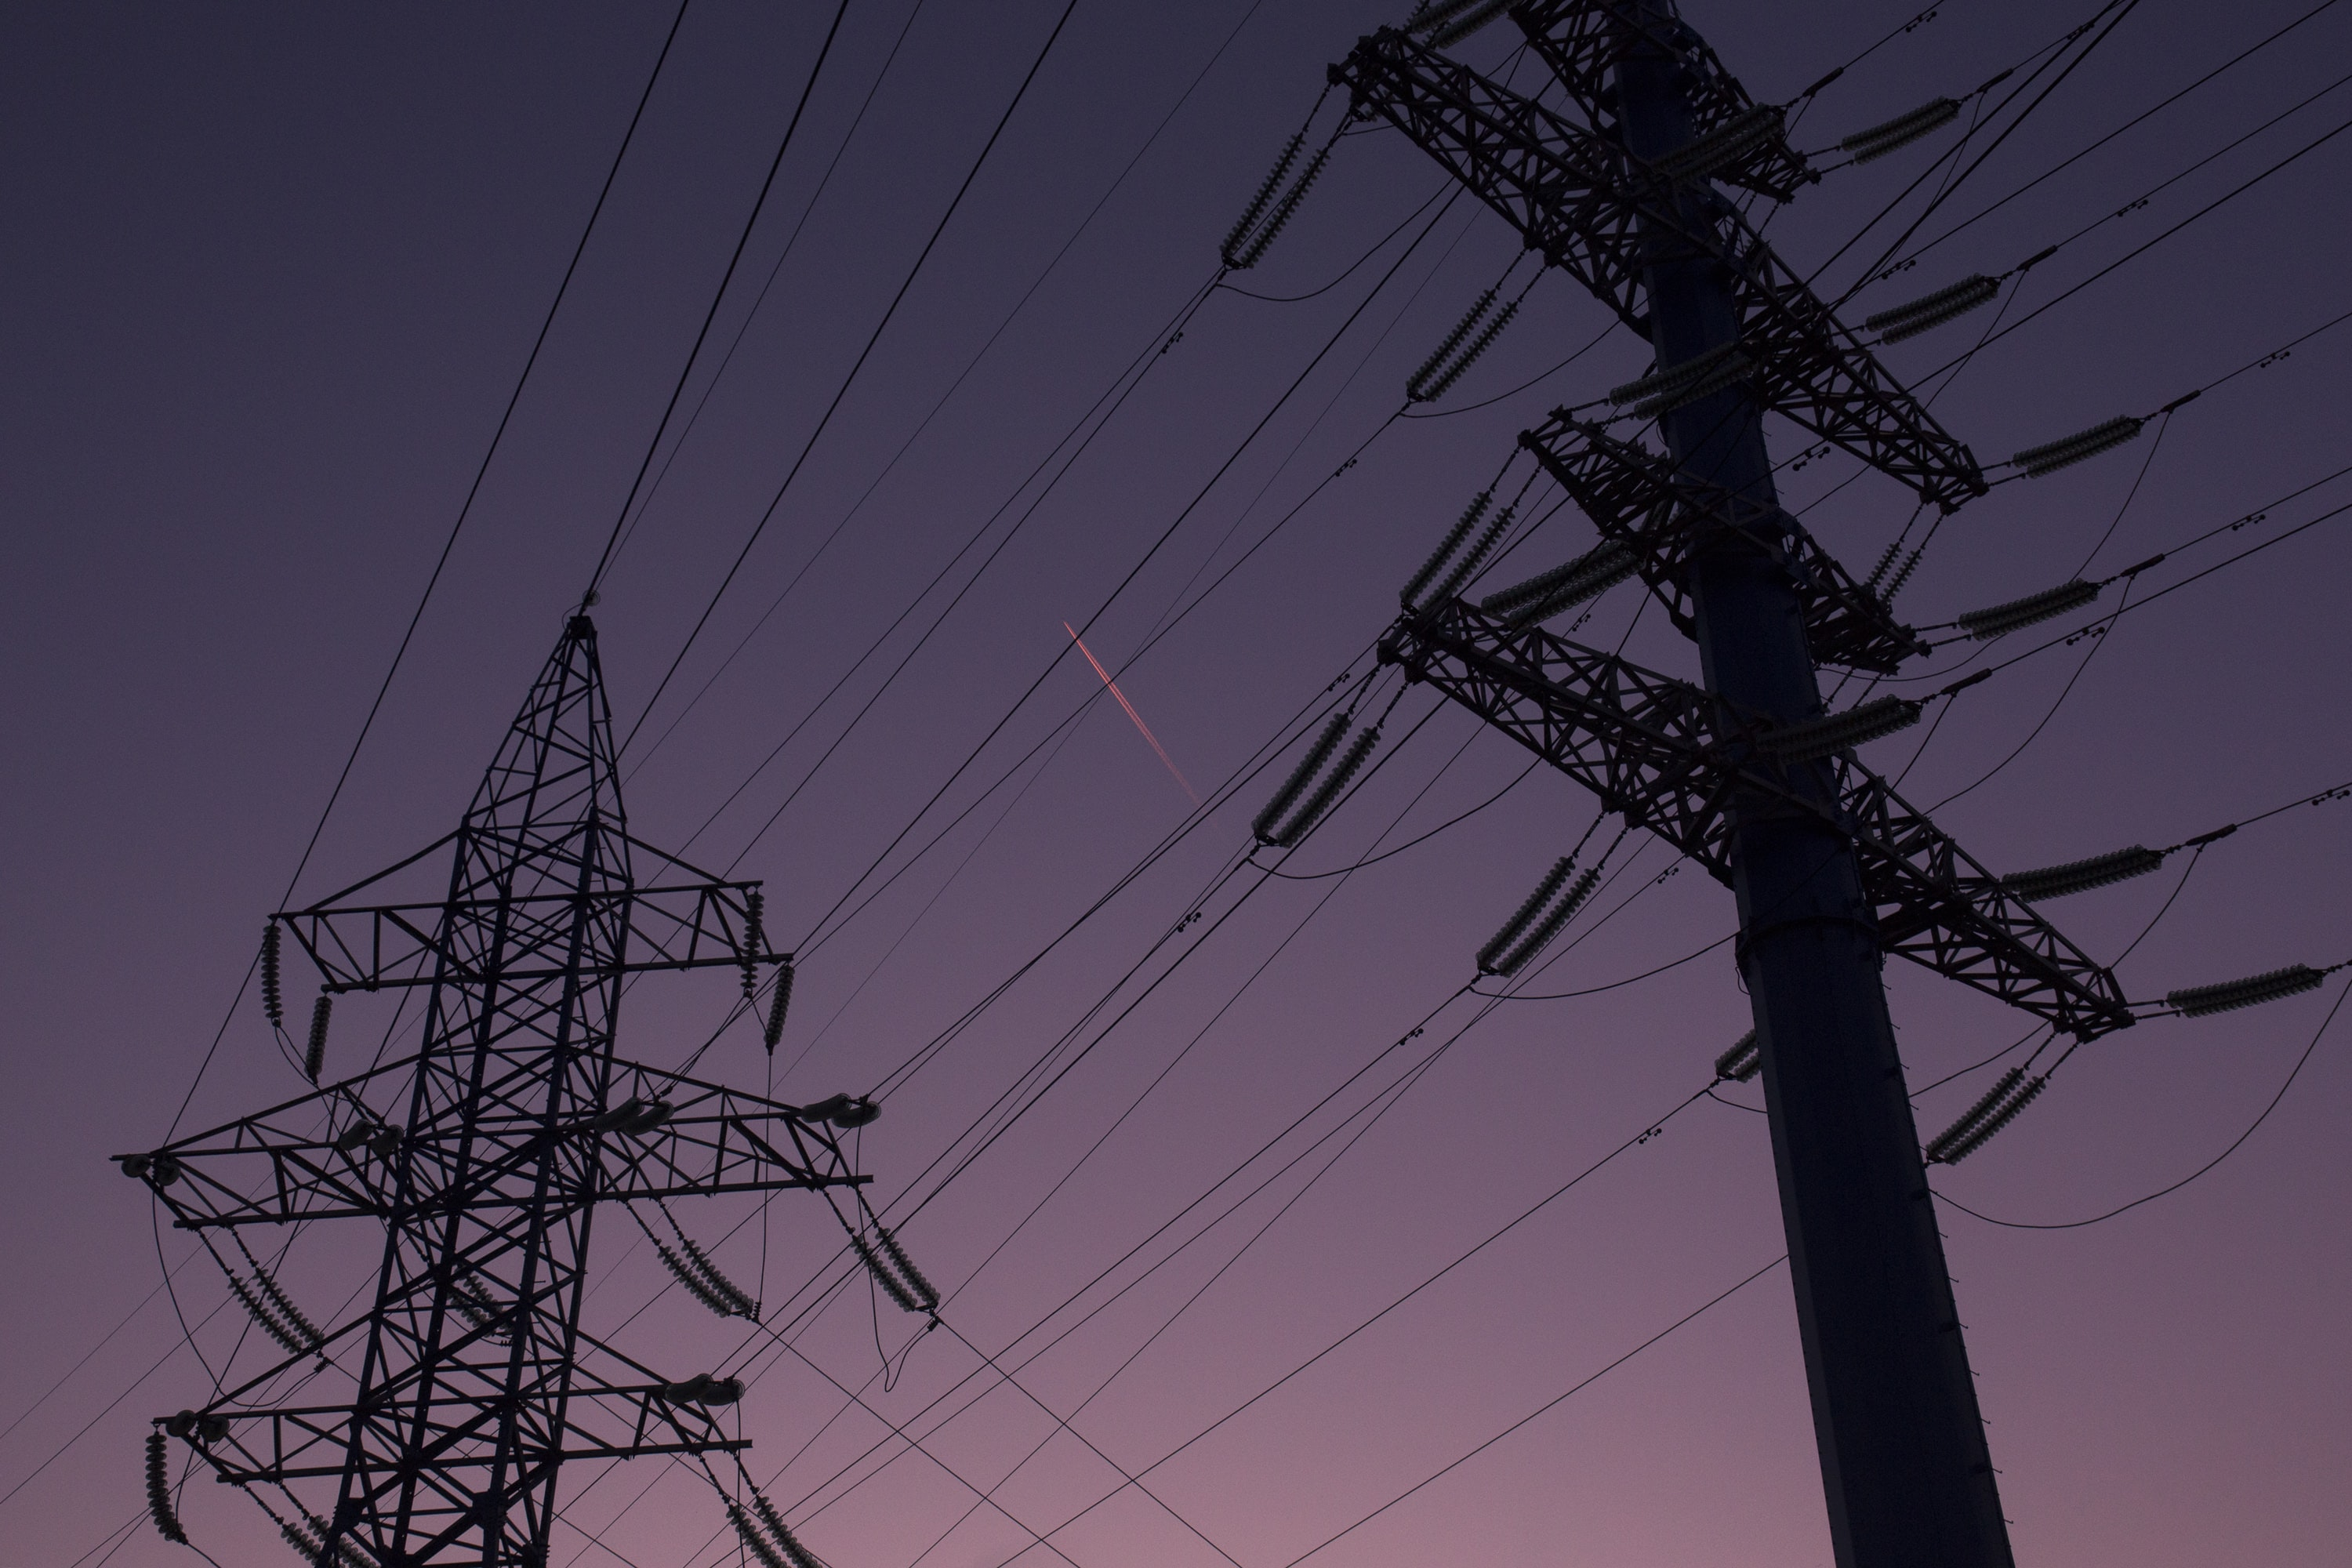 silhouette of electric towers